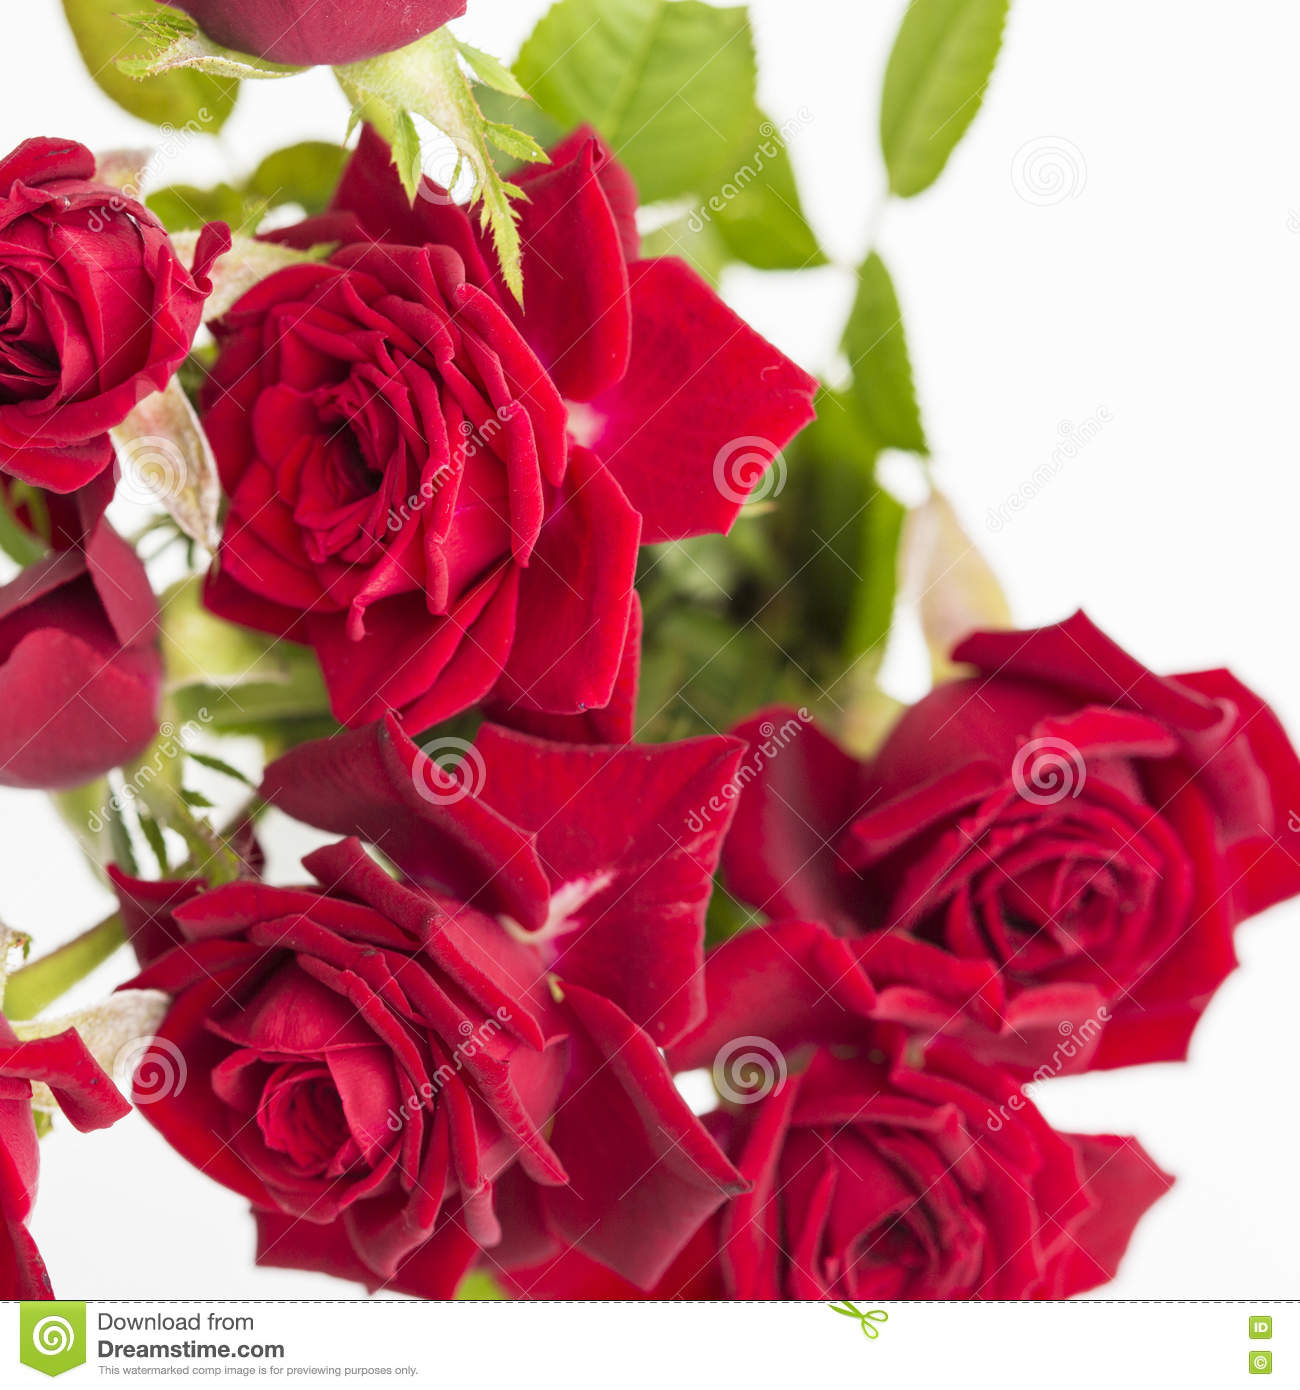 Red Love Roses Flowers Bouquet Close Up On A White Background Stock